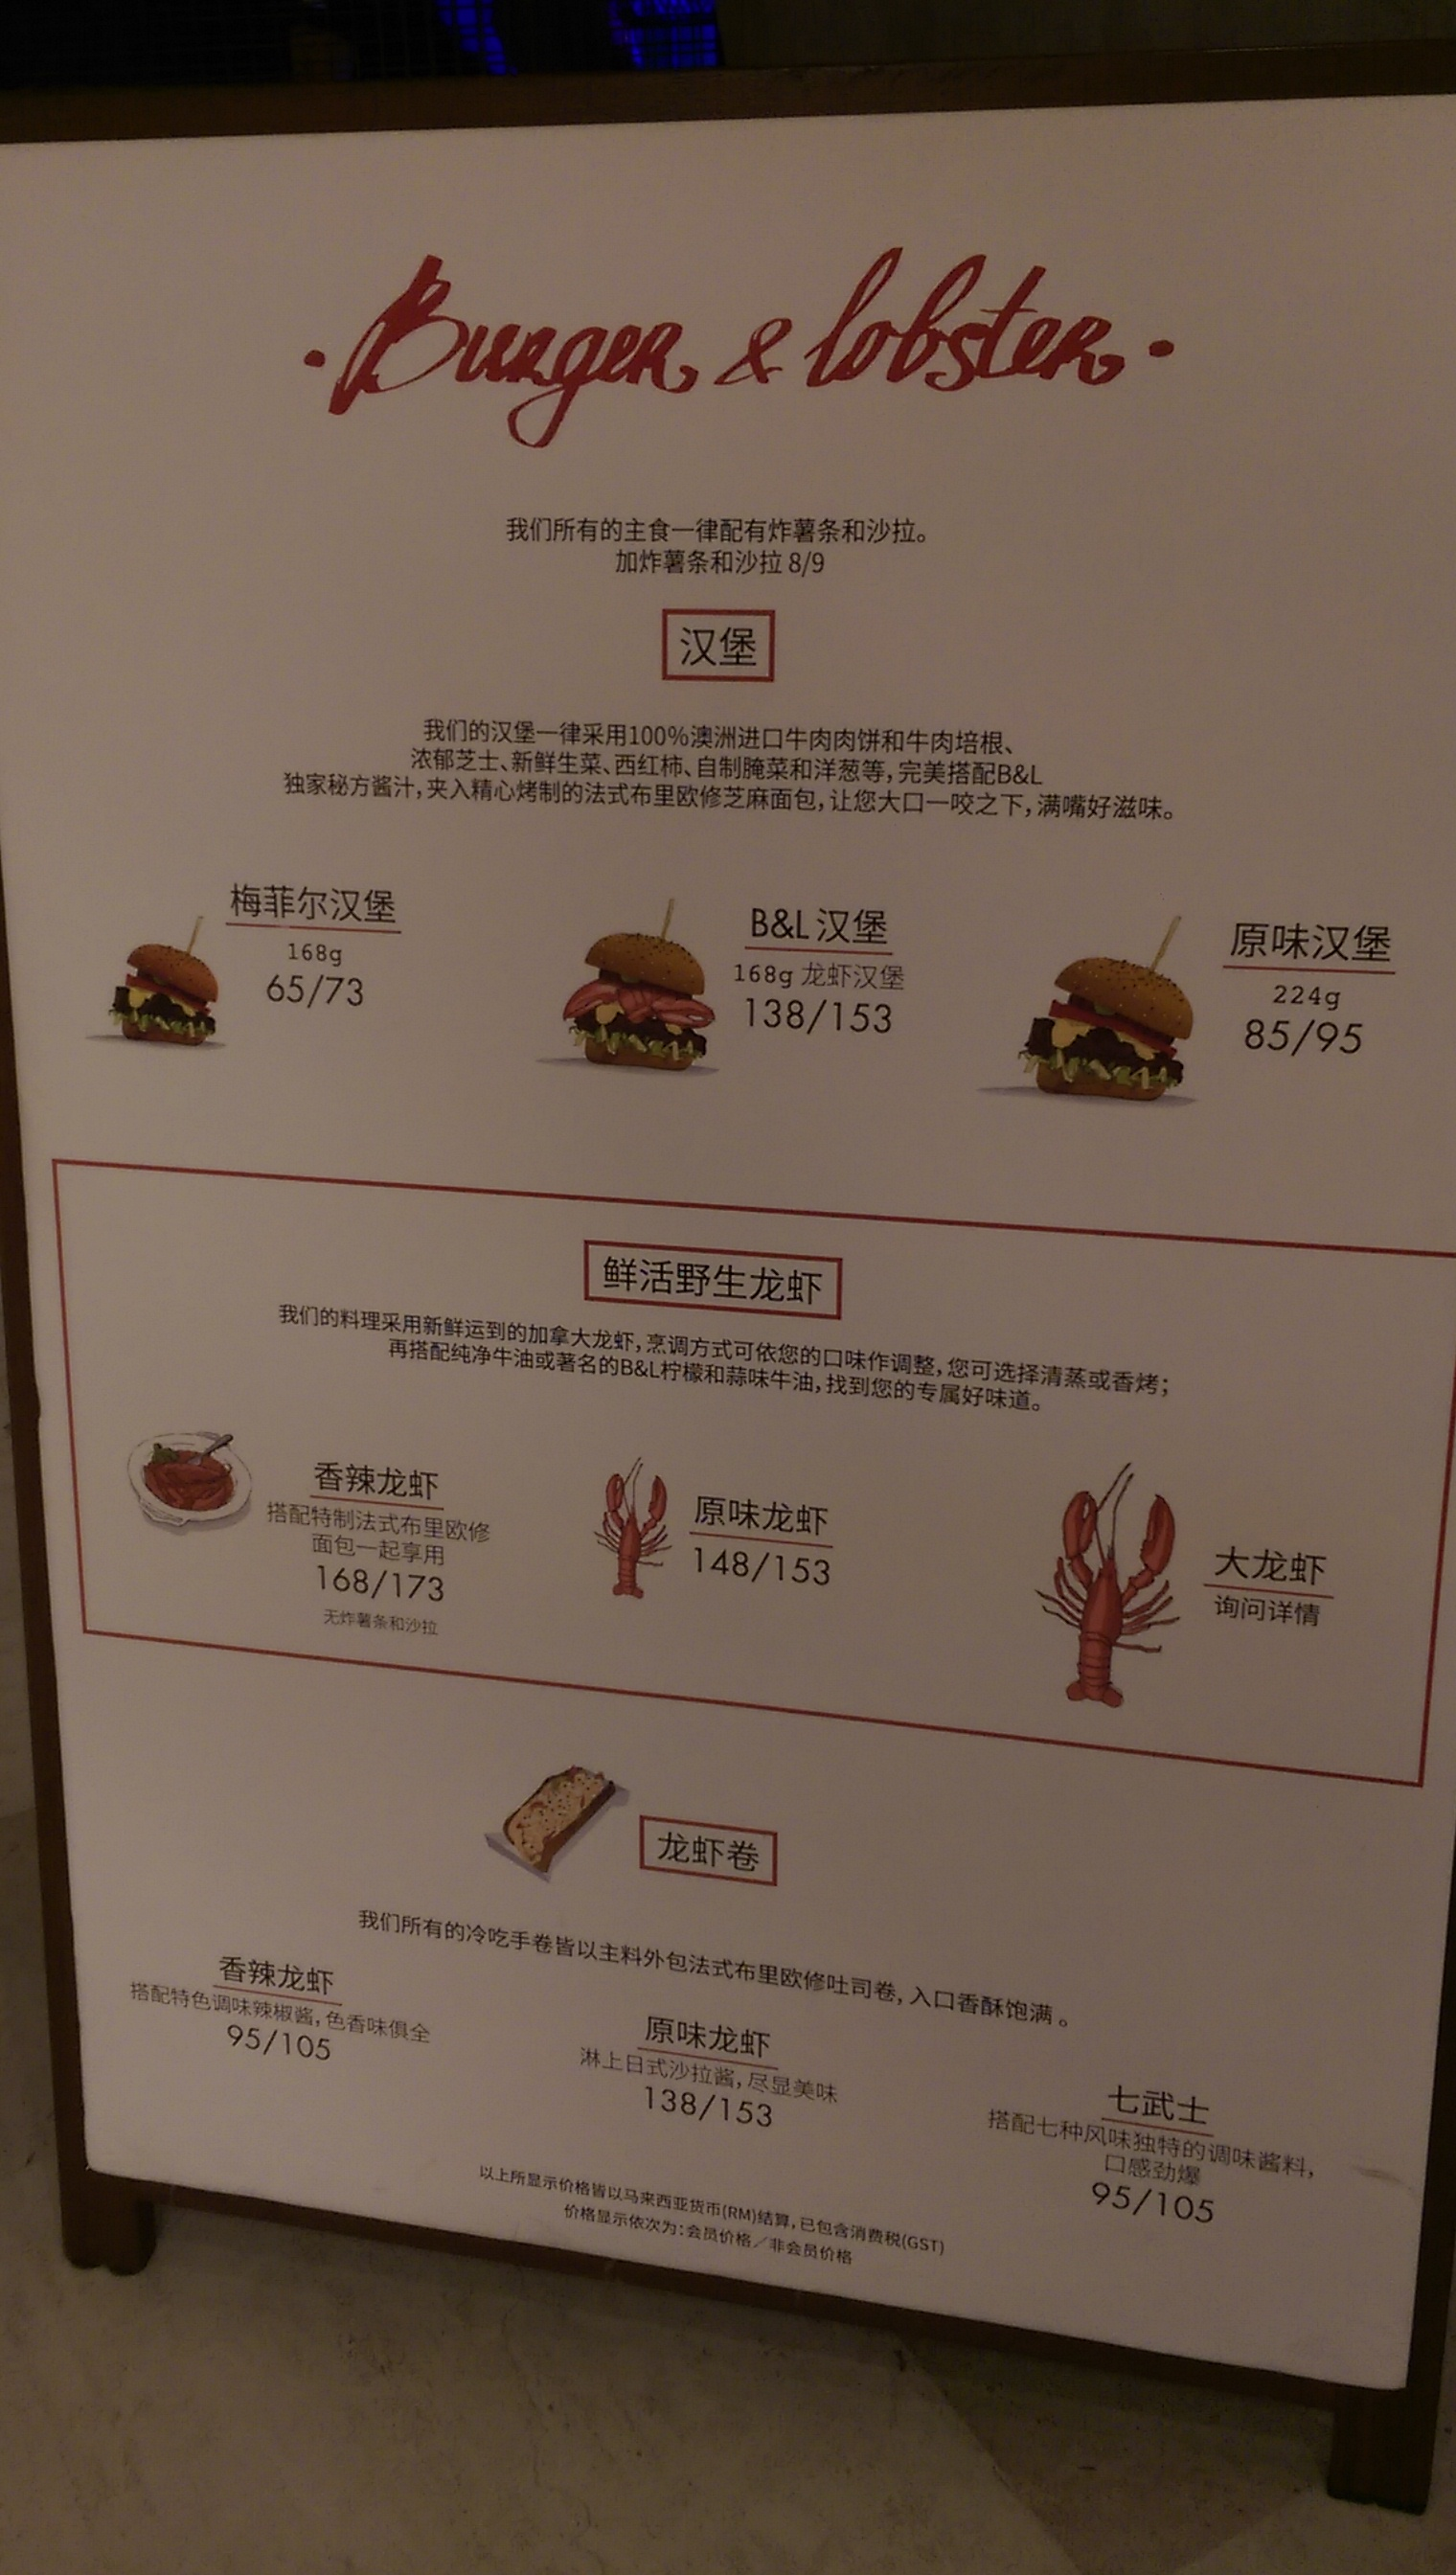 burger & lobster menu